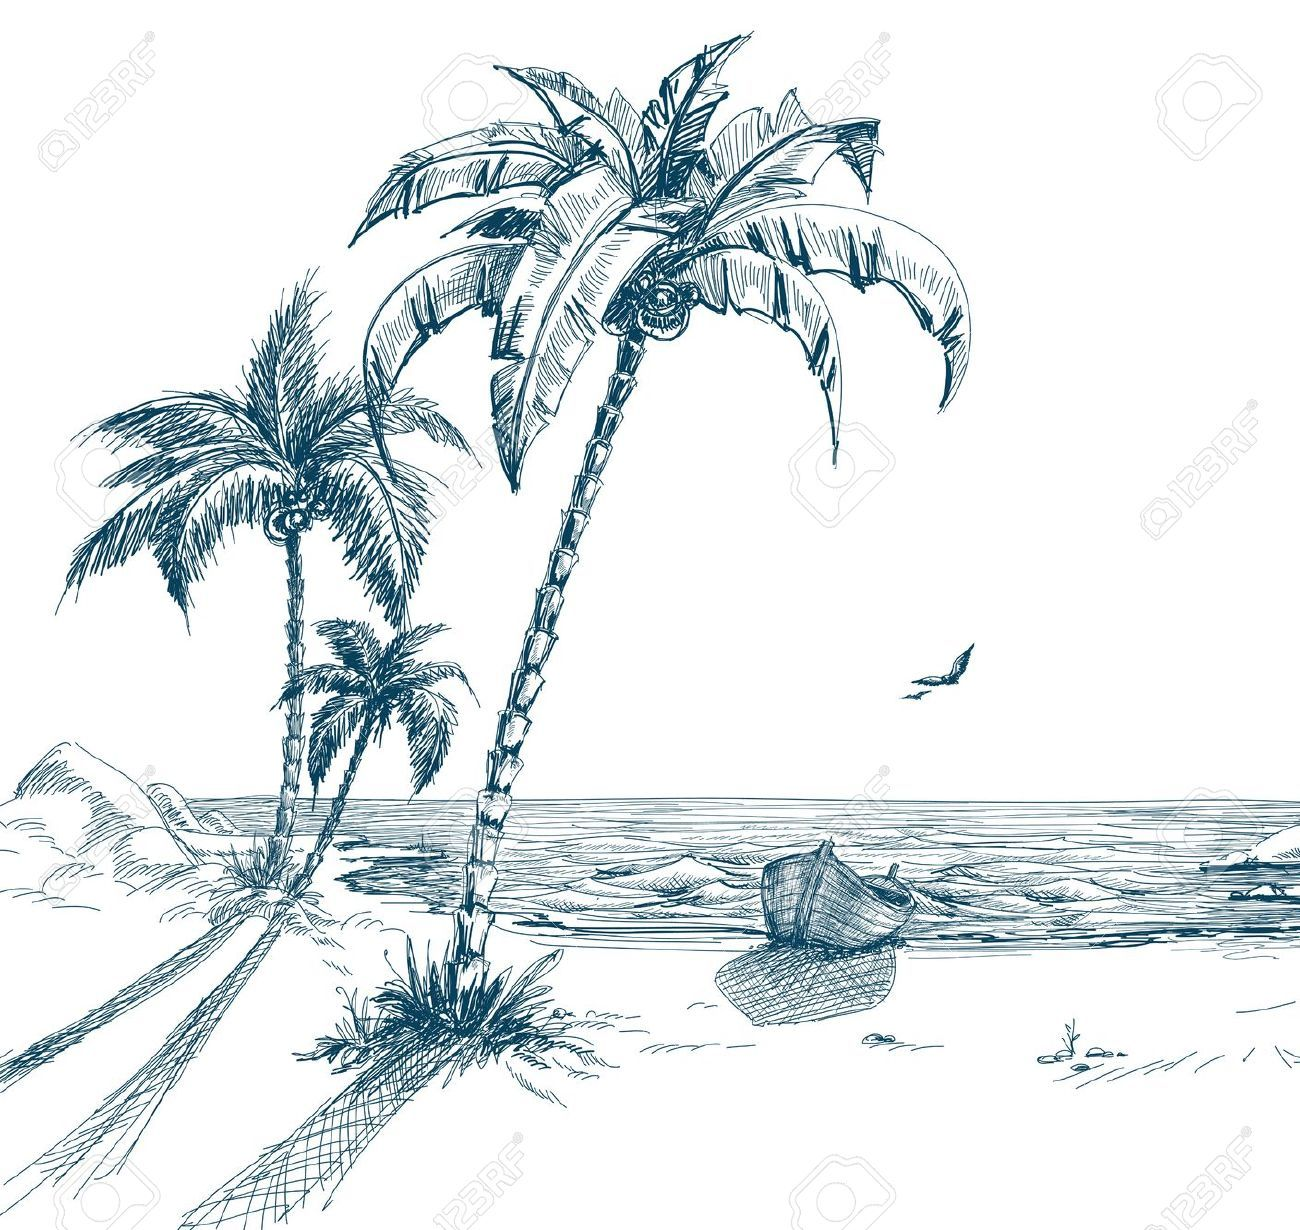 Line Art Beach : Summer beach with palm trees seagulls and boat on